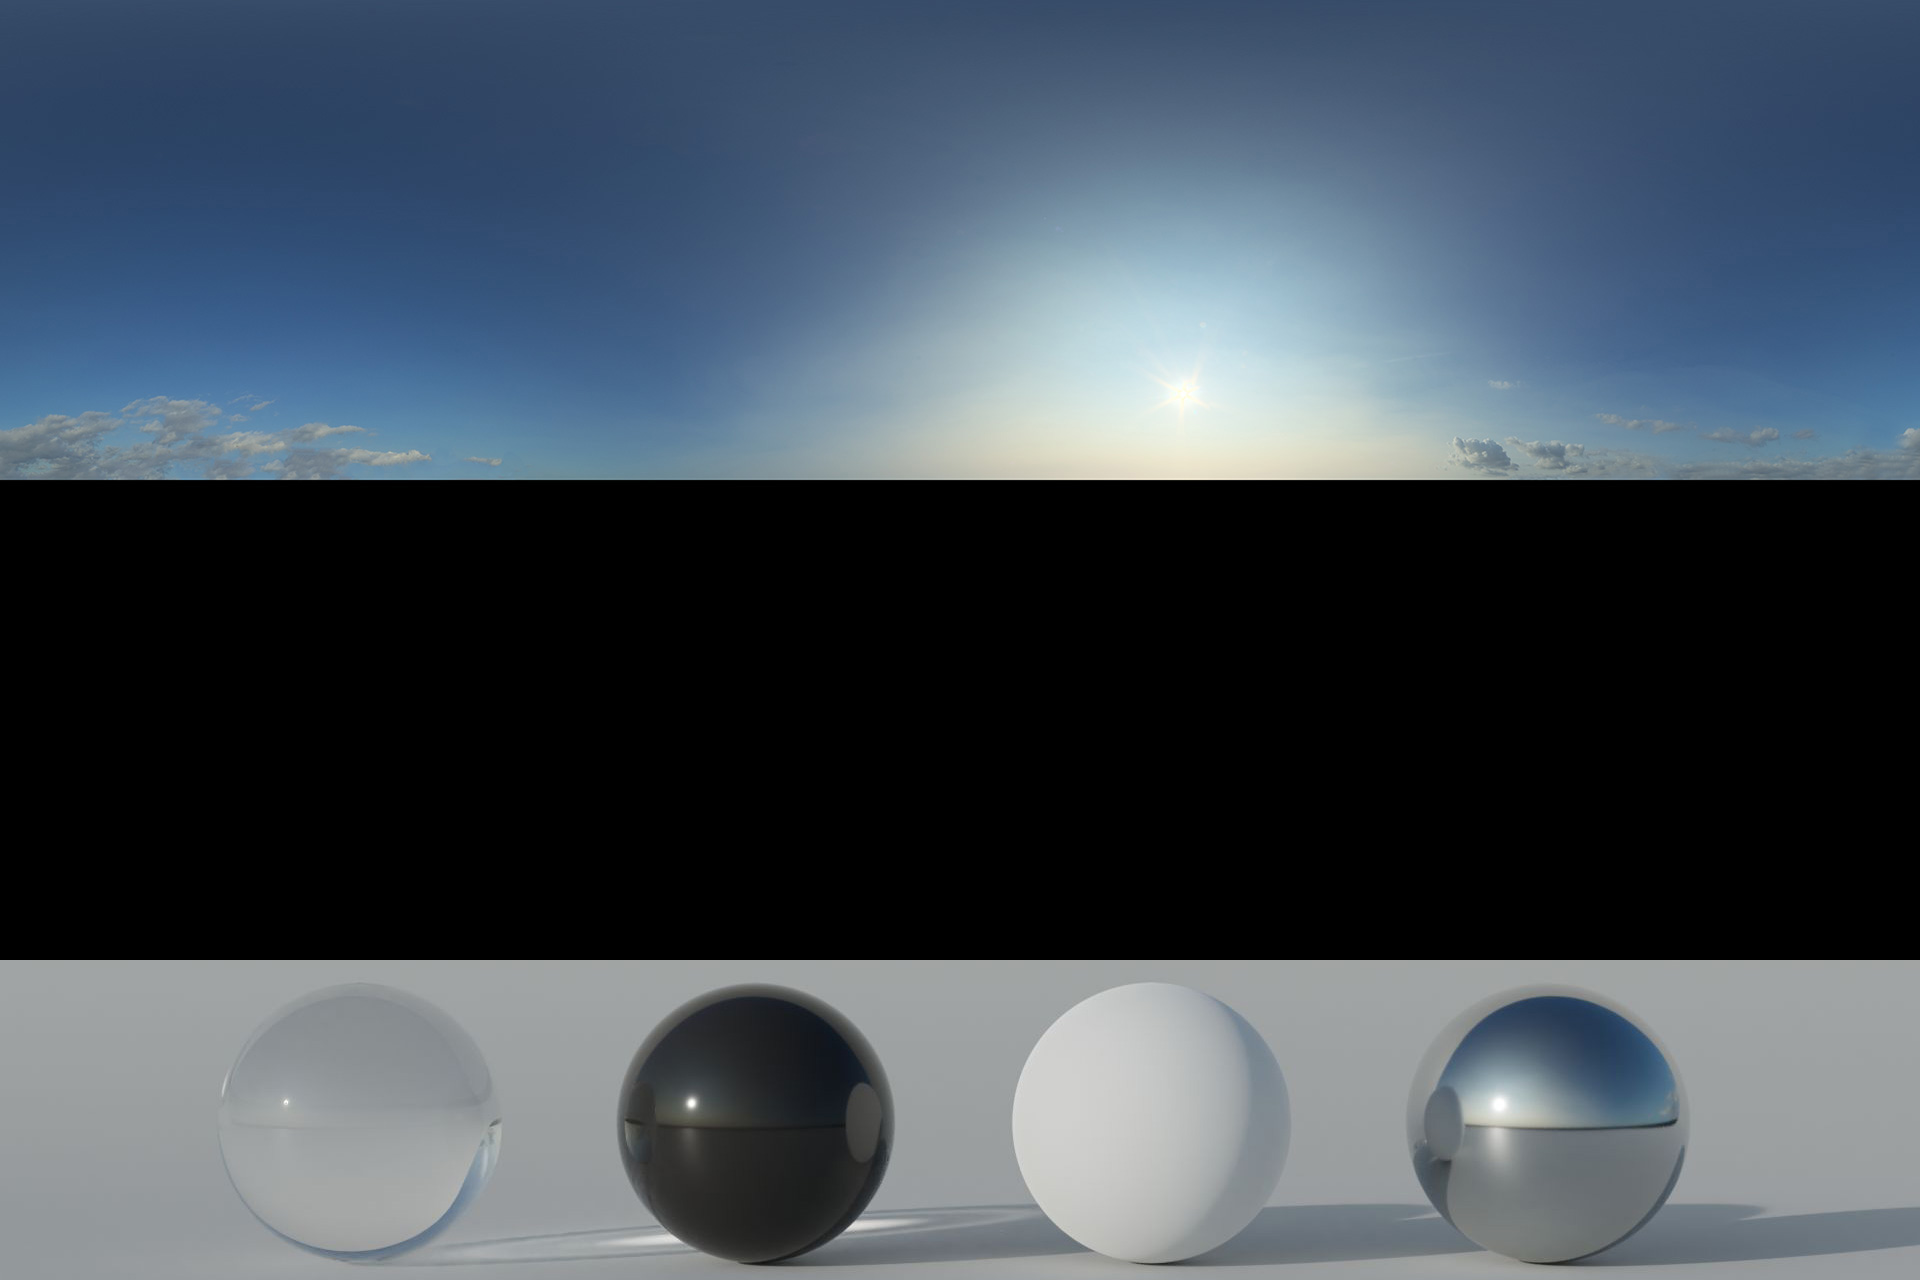 Download an Awesome HDRi Sky 022